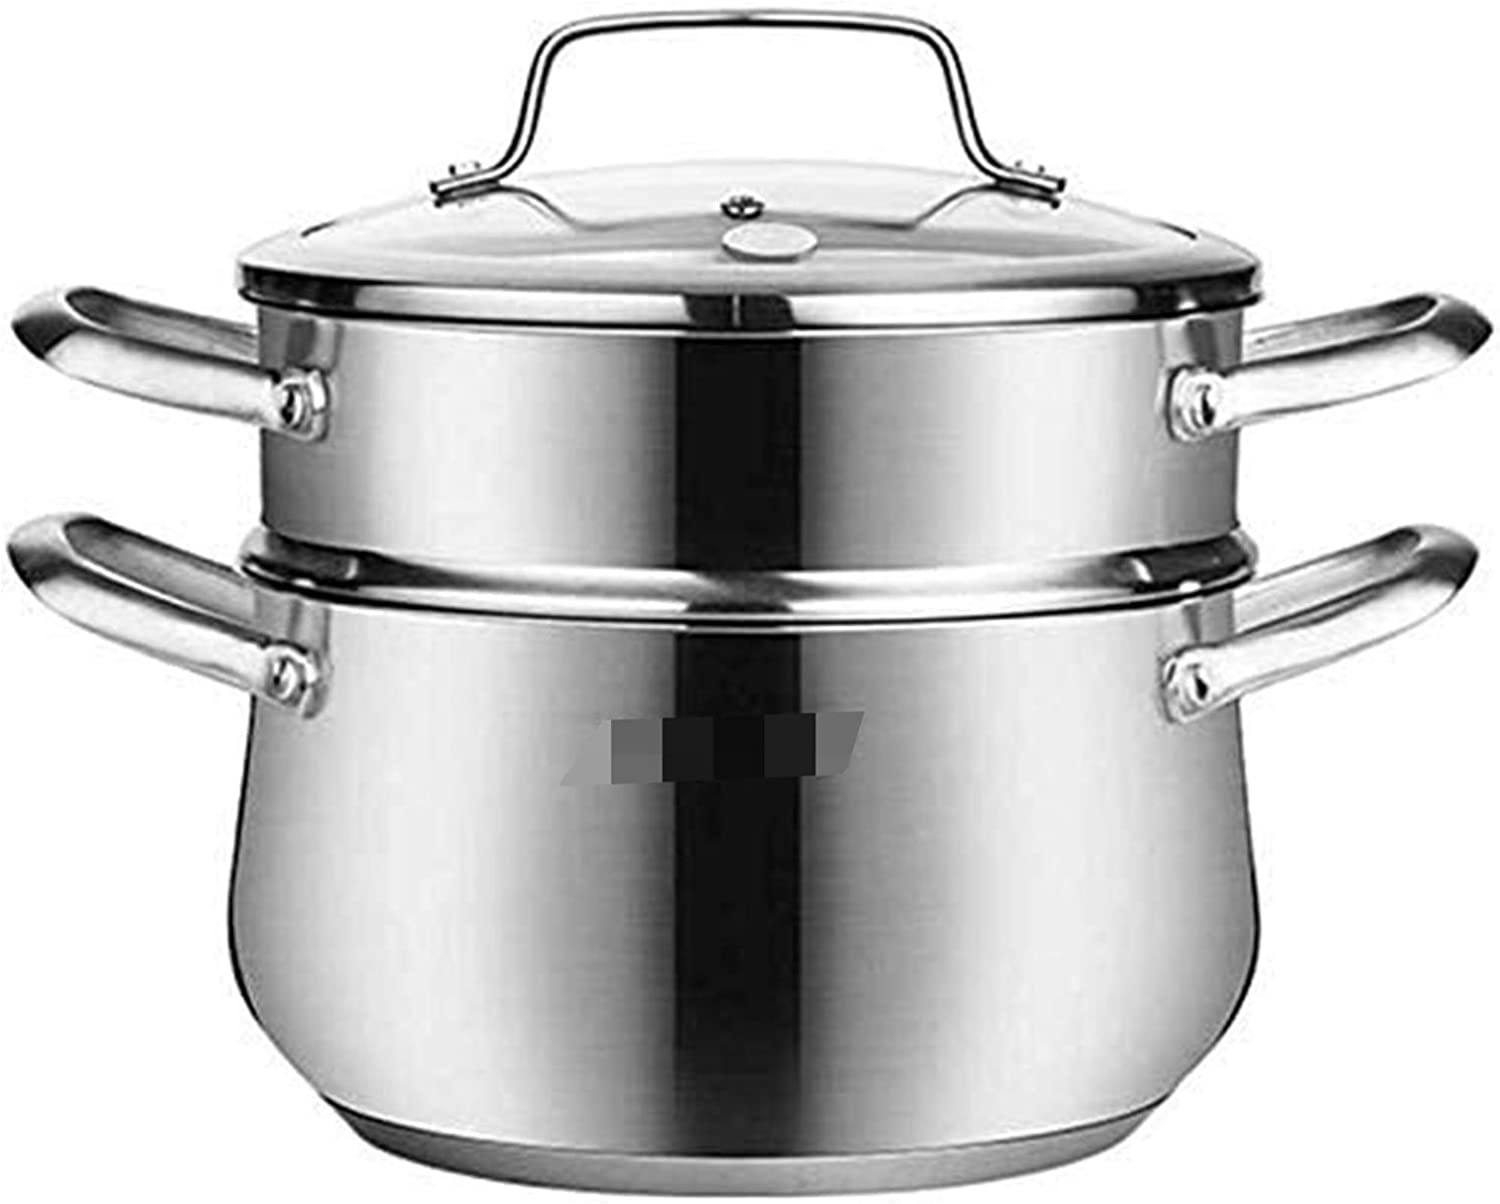 NBBB Steamer Pan Set 3 Tier Stainless Steel Uncoated Composite Bottom Steamers Induction Hob Gas Universal Stock Pot 1218 (Size : 20cm)